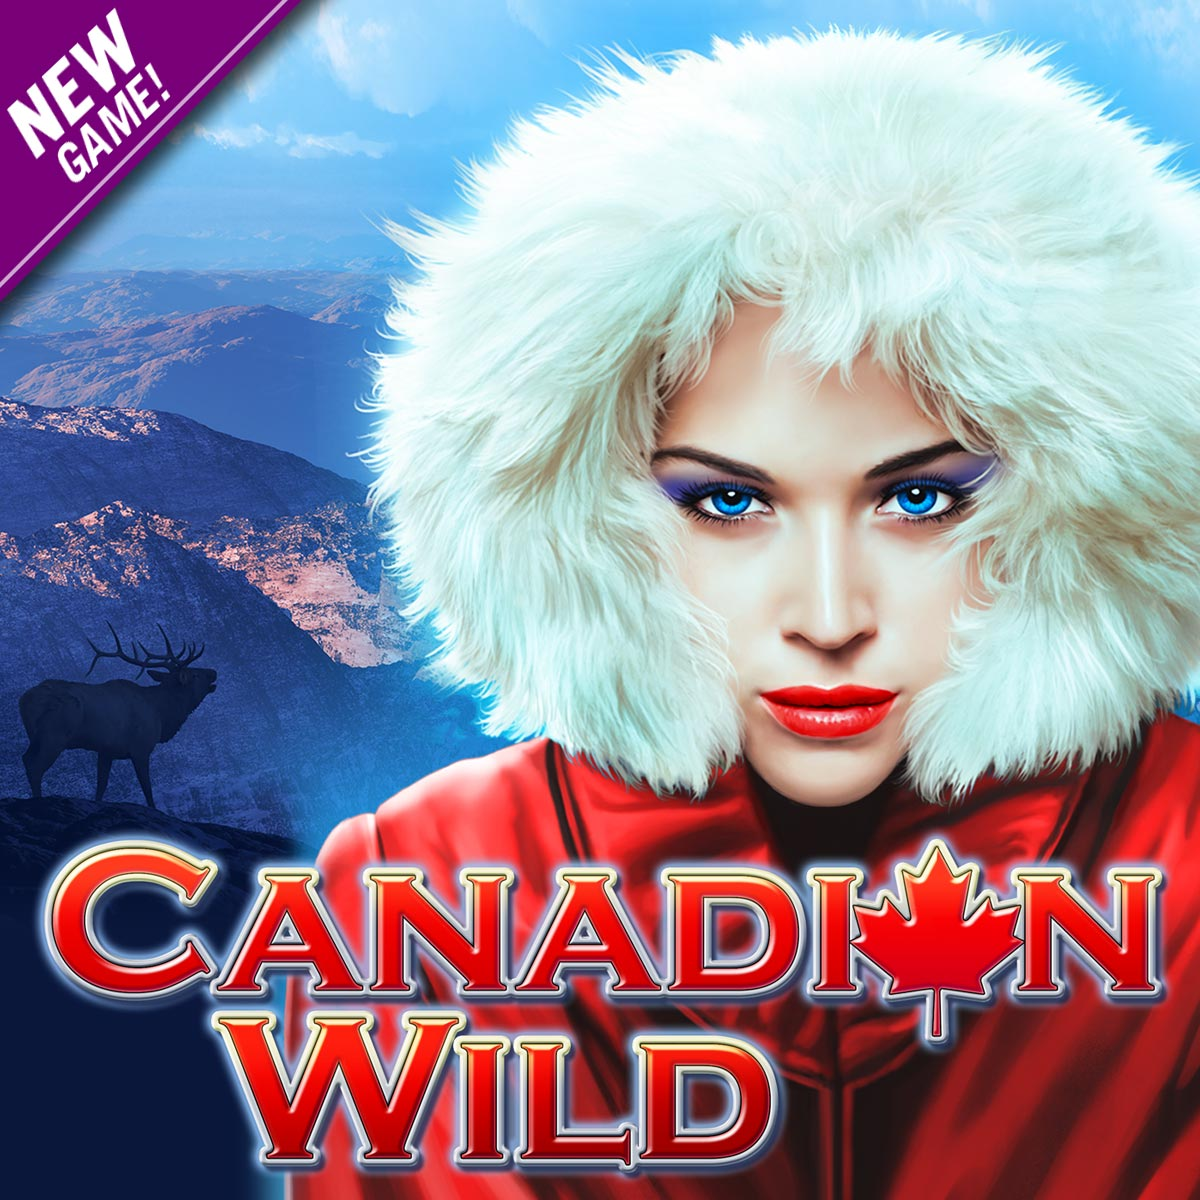 h5c_canadianwild_wallpost_a